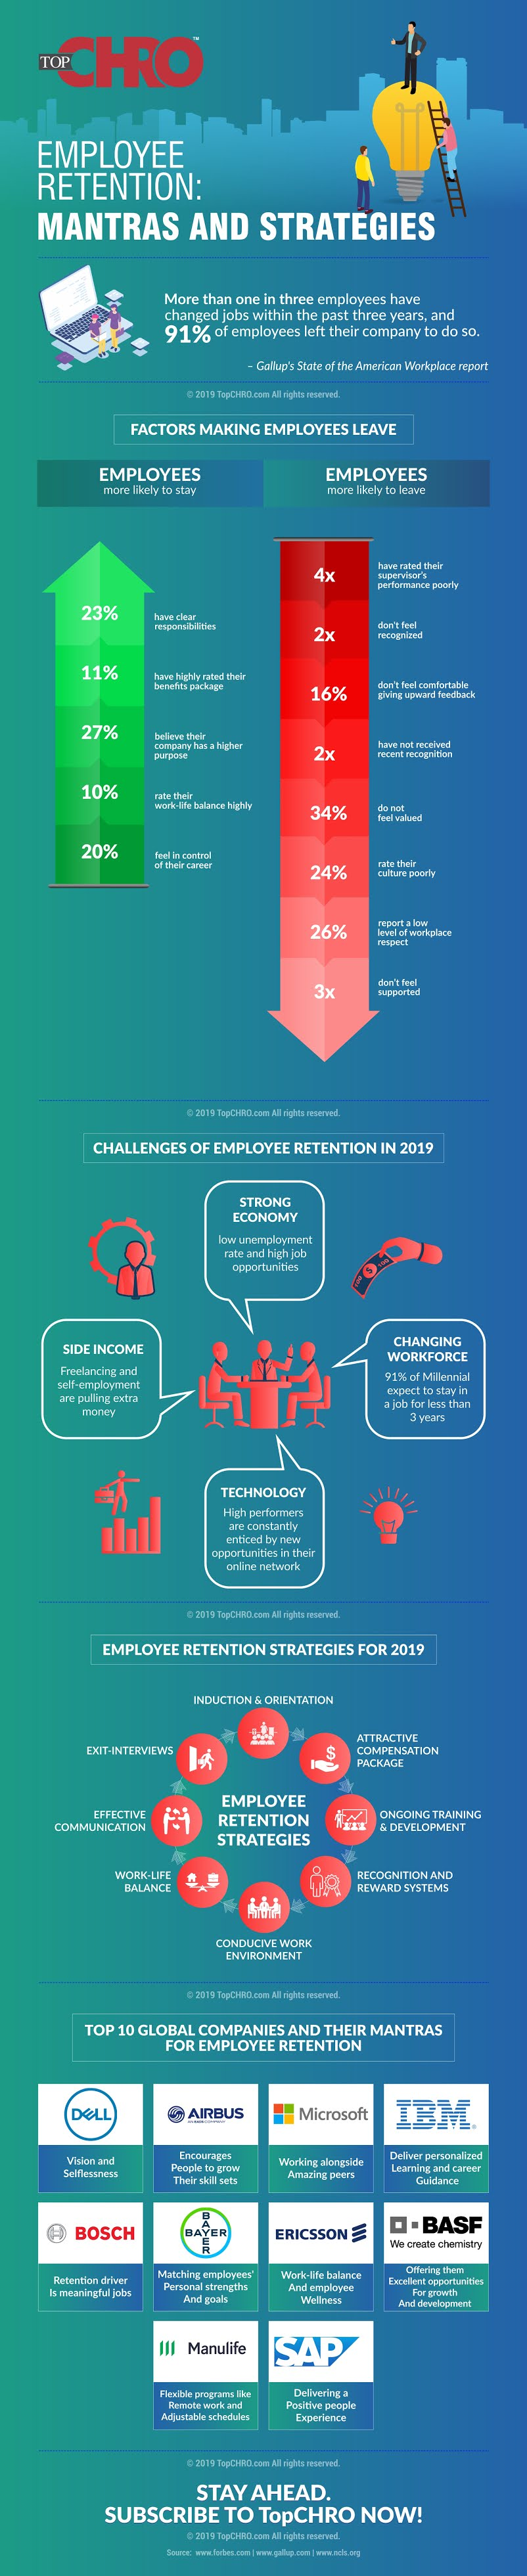 Employee Retention: Mantras and Strategies #infographic #Of The Day #infographics #Employee Retention #Employee